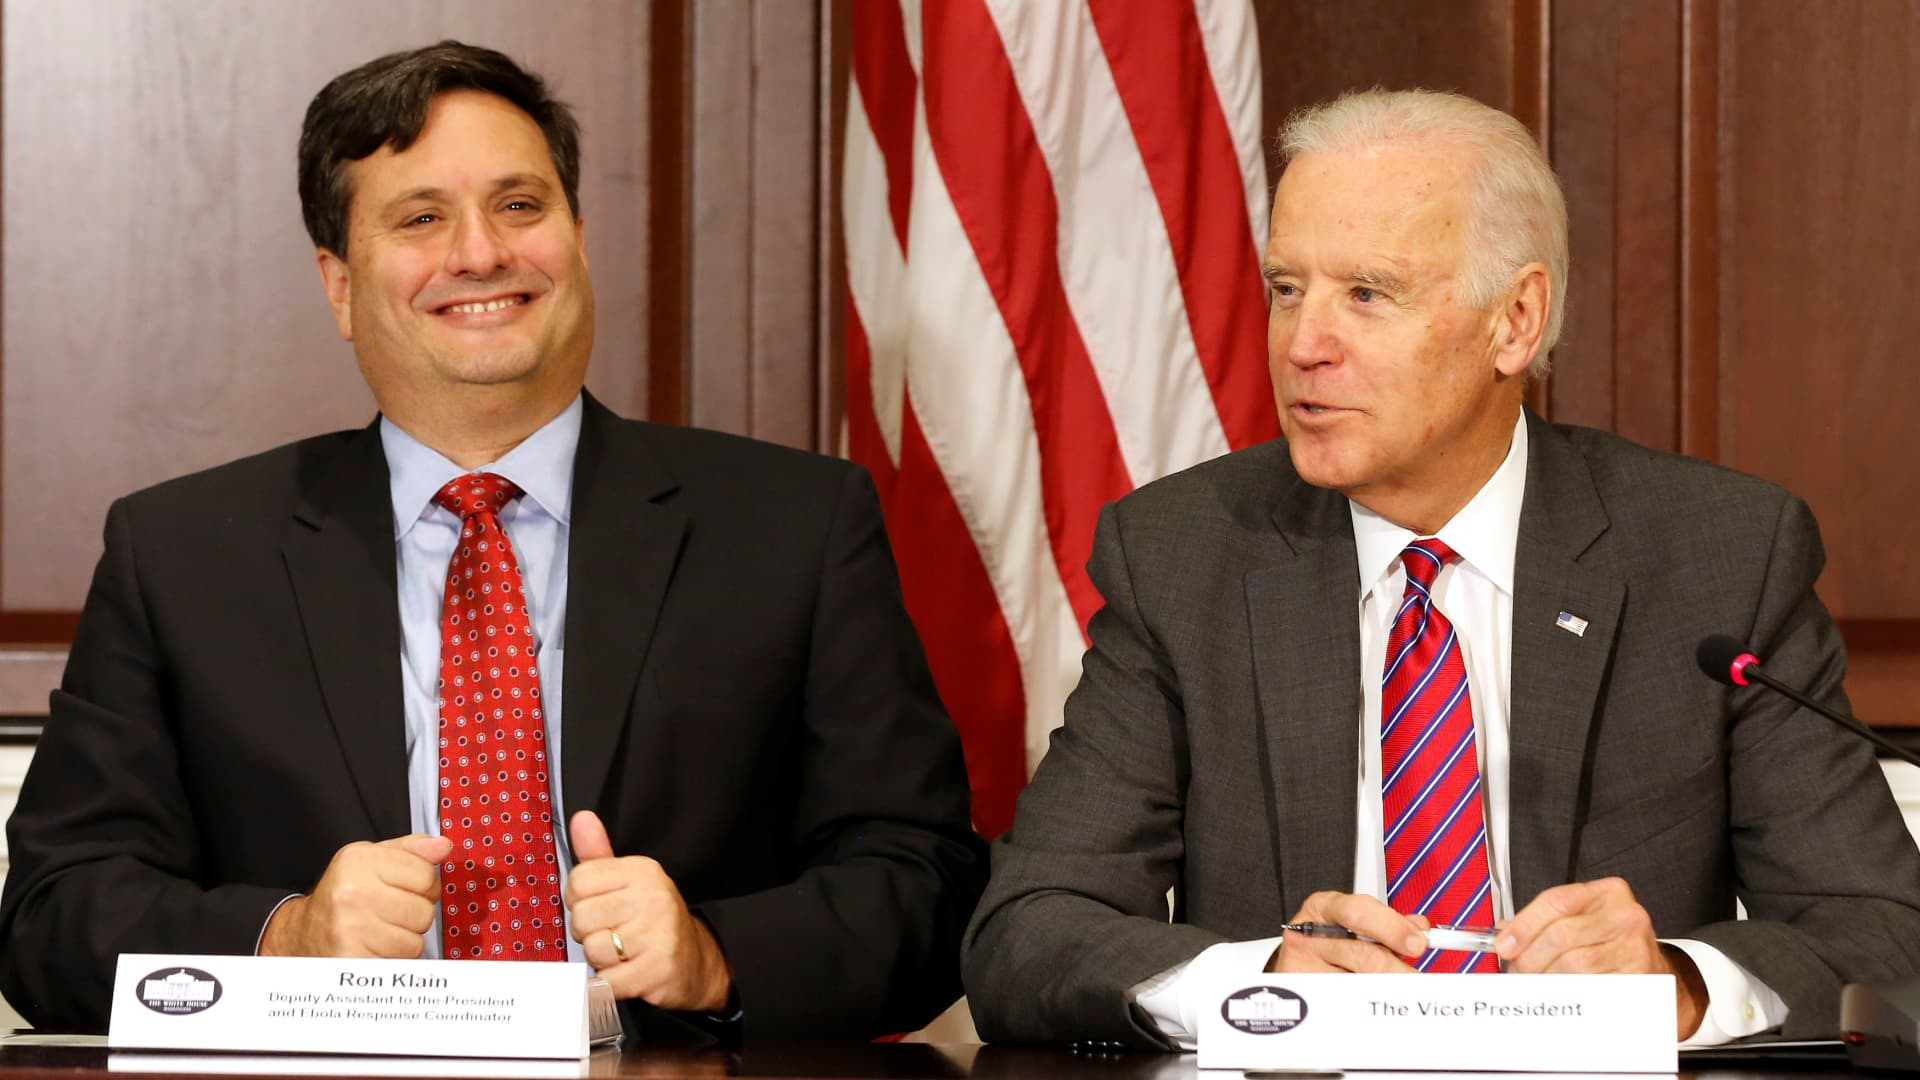 U.S. Vice President Joe Biden (R) is joined by Ebola Response Coordinator Ron Klain (L) in the Eisenhower Executive Office Building on the White House complex in Washington, U.S. November 13, 2014.